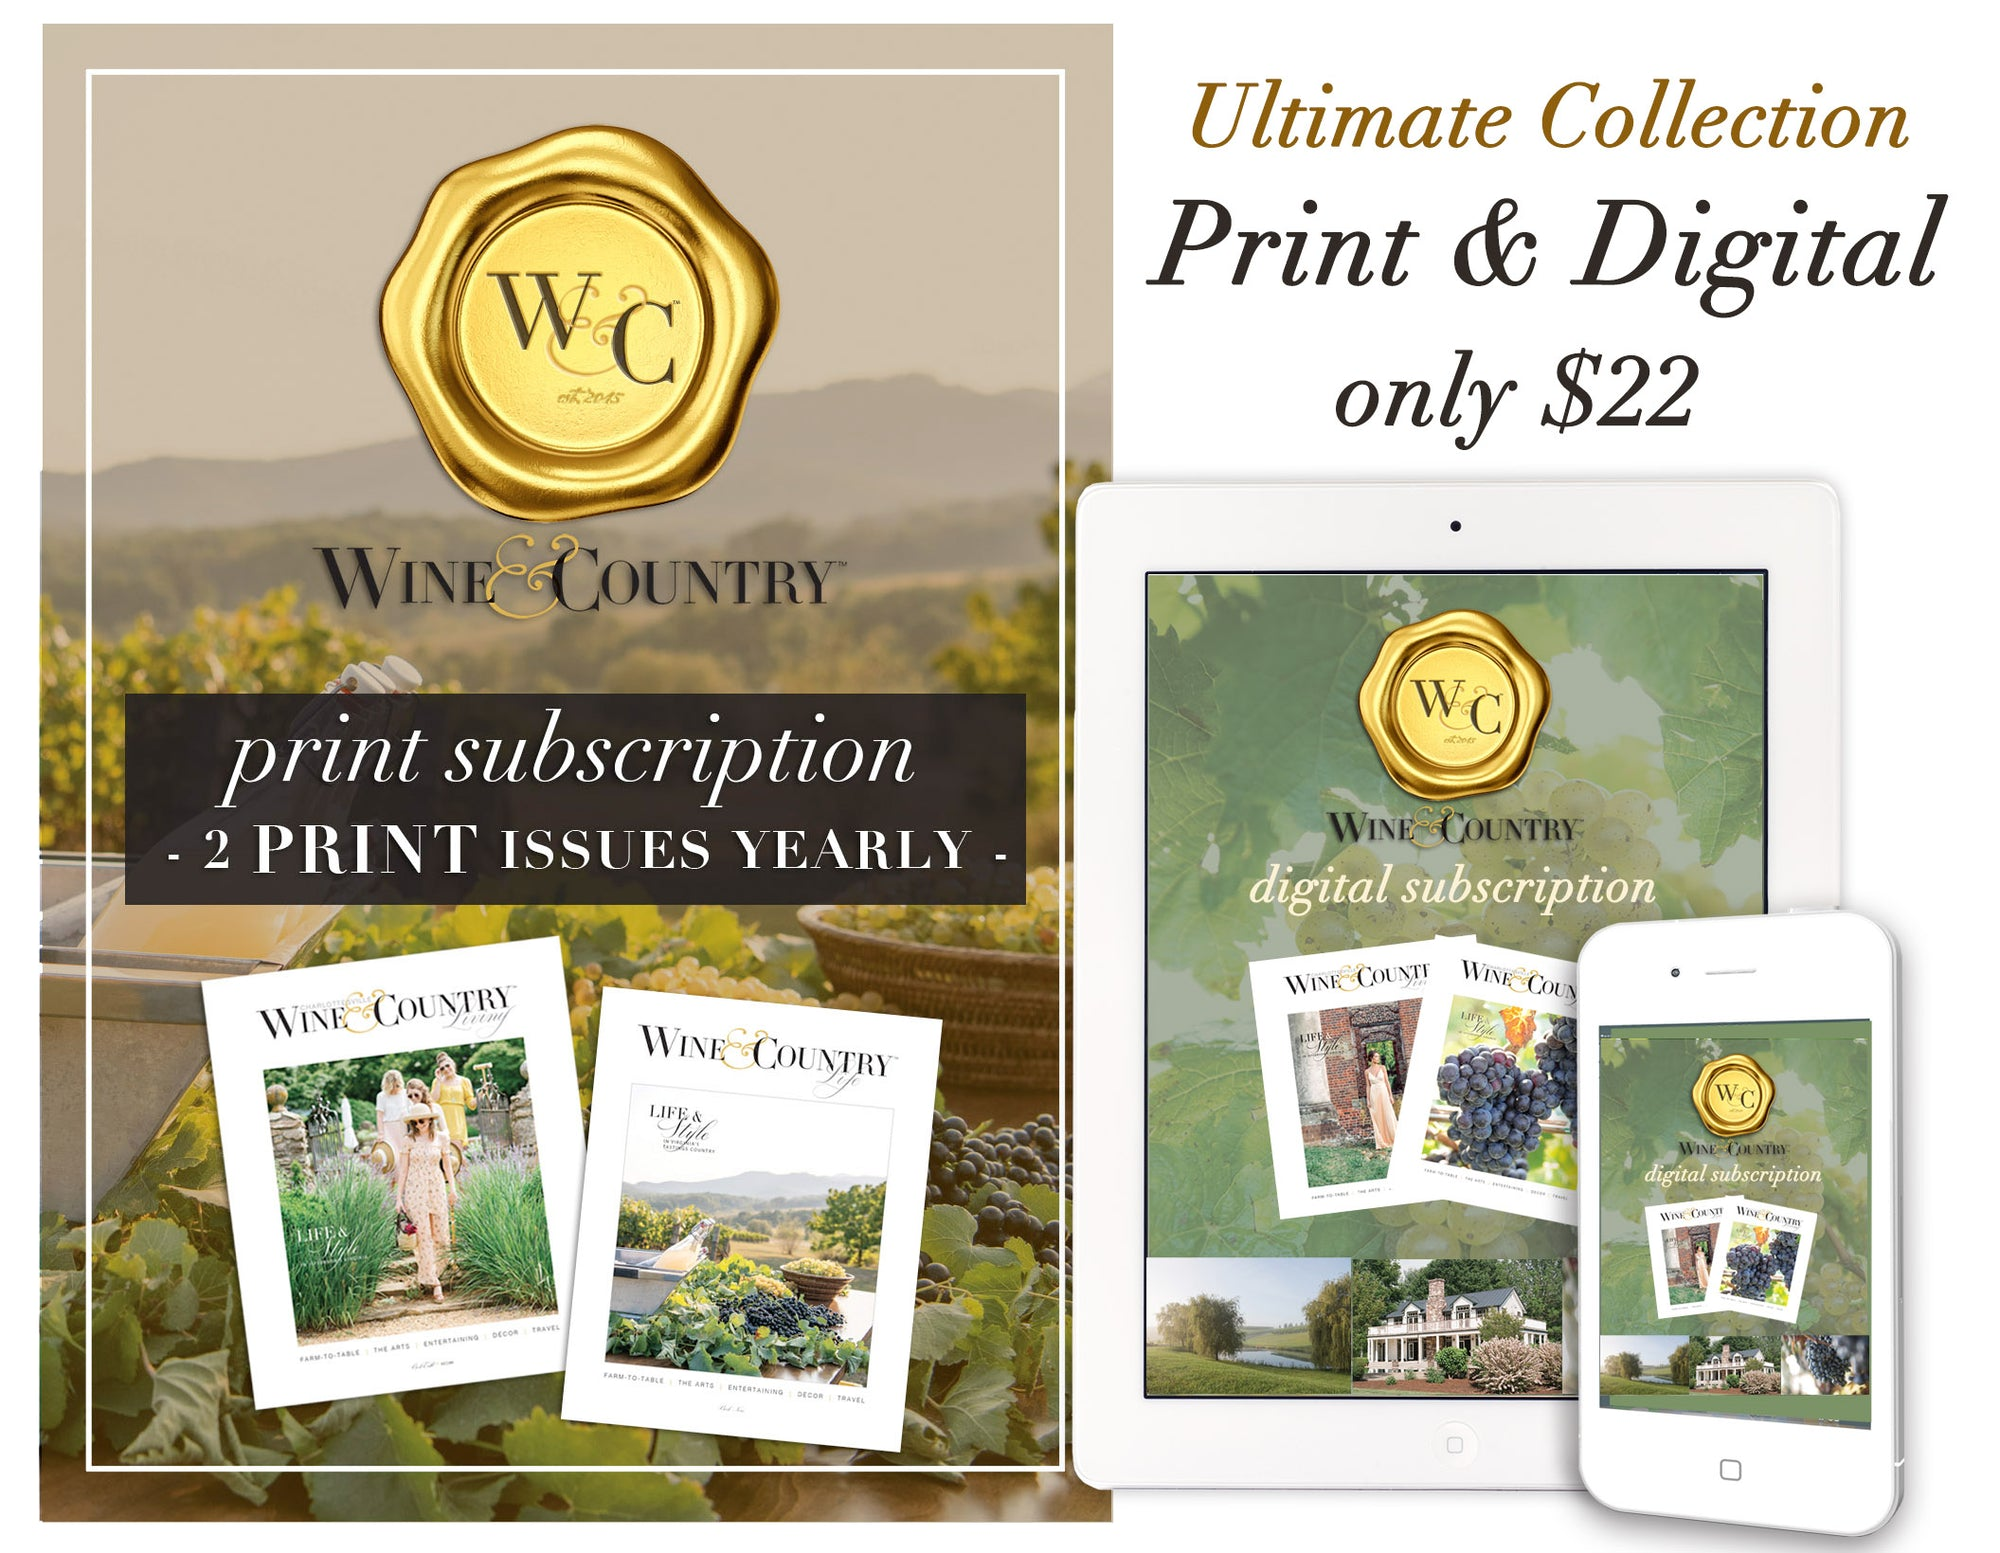 W&C LIFE SUBSCRIPTION - PRINT + DIGITAL